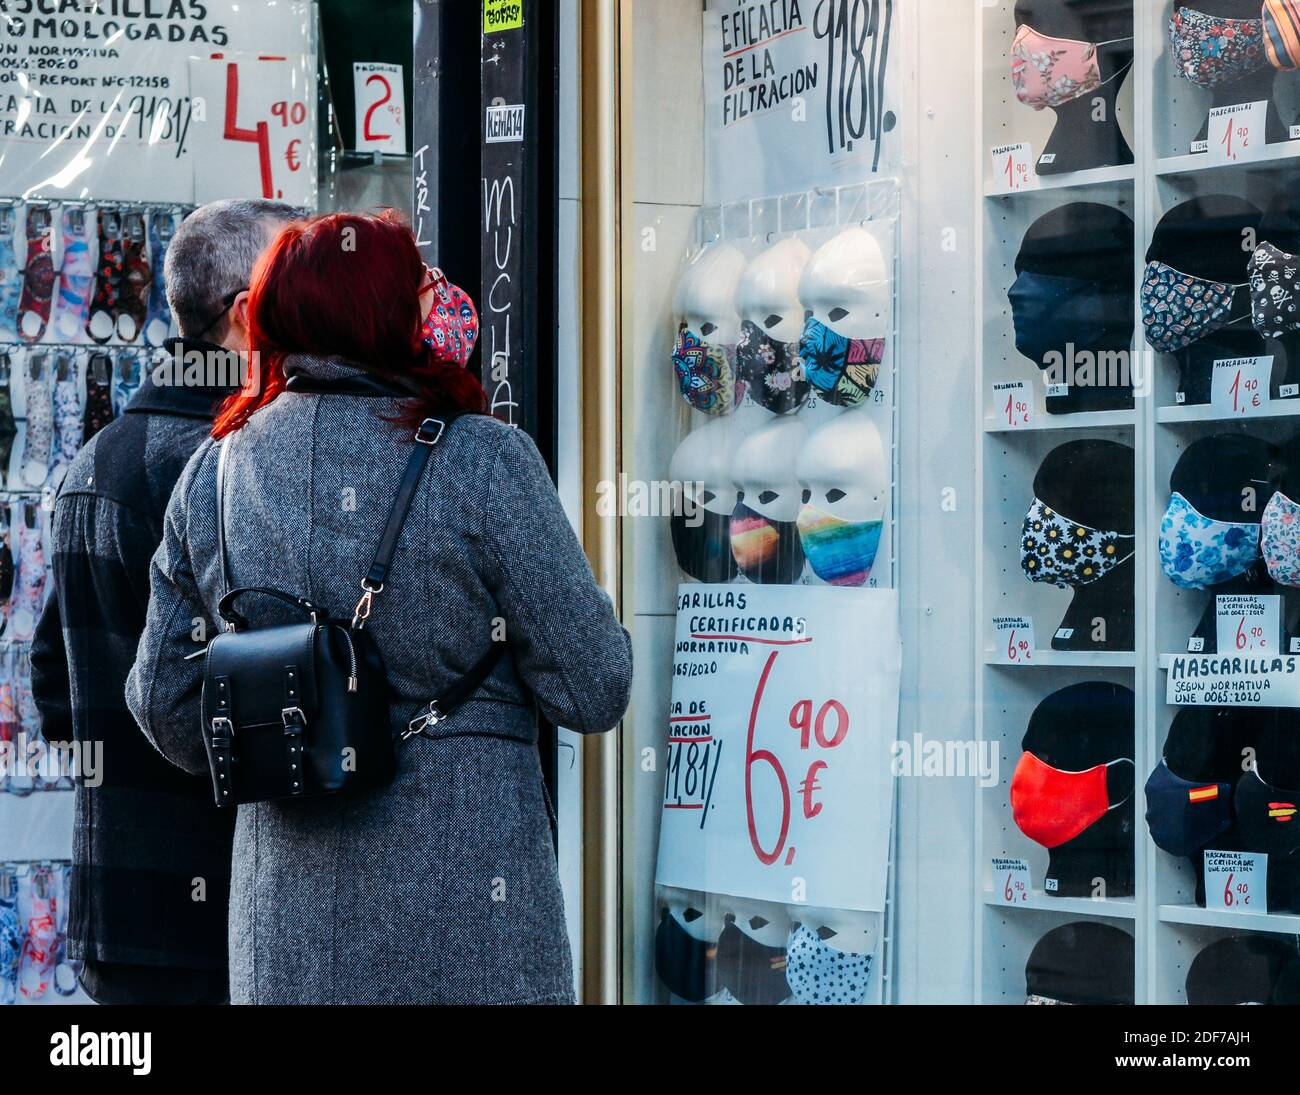 madrid-spain-november-29-2020-people-look-at-stylish-face-masks-on-display-for-sale-during-covid-19-epidemic-2DF7AJH.jpg